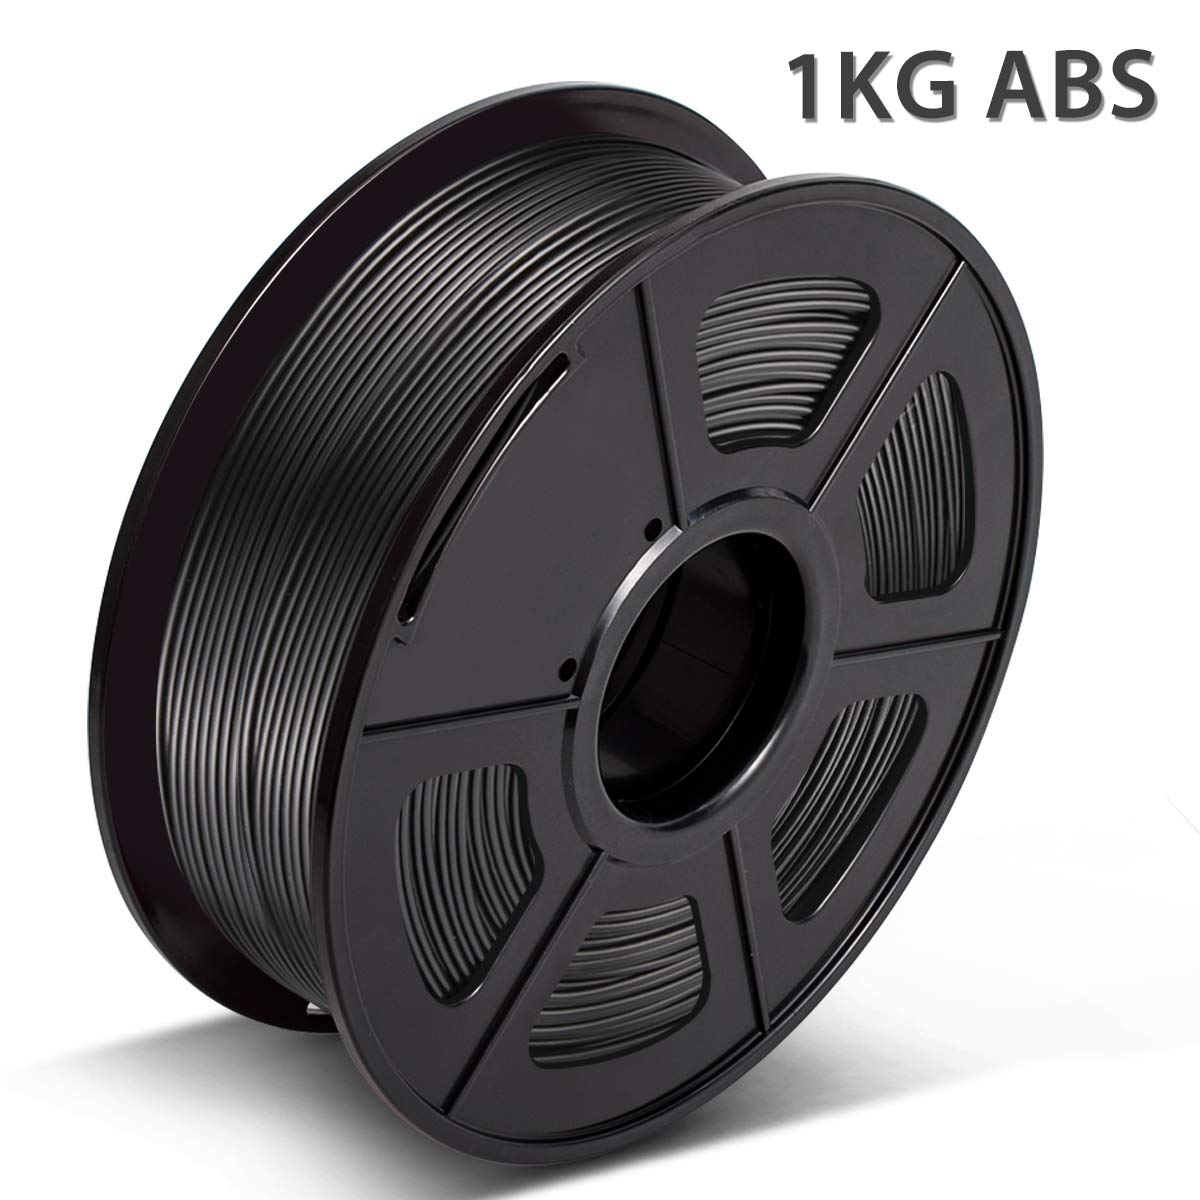 2.2 LBS PLA Filament Black 1KG Bonus with 5M PCL Nozzle Cleaning Filament Dimensional Accuracy +//- 0.02 mm ,1.75mm Filament 3D Hero PLA Filament 1.75mm,PLA 3D Printer Filament